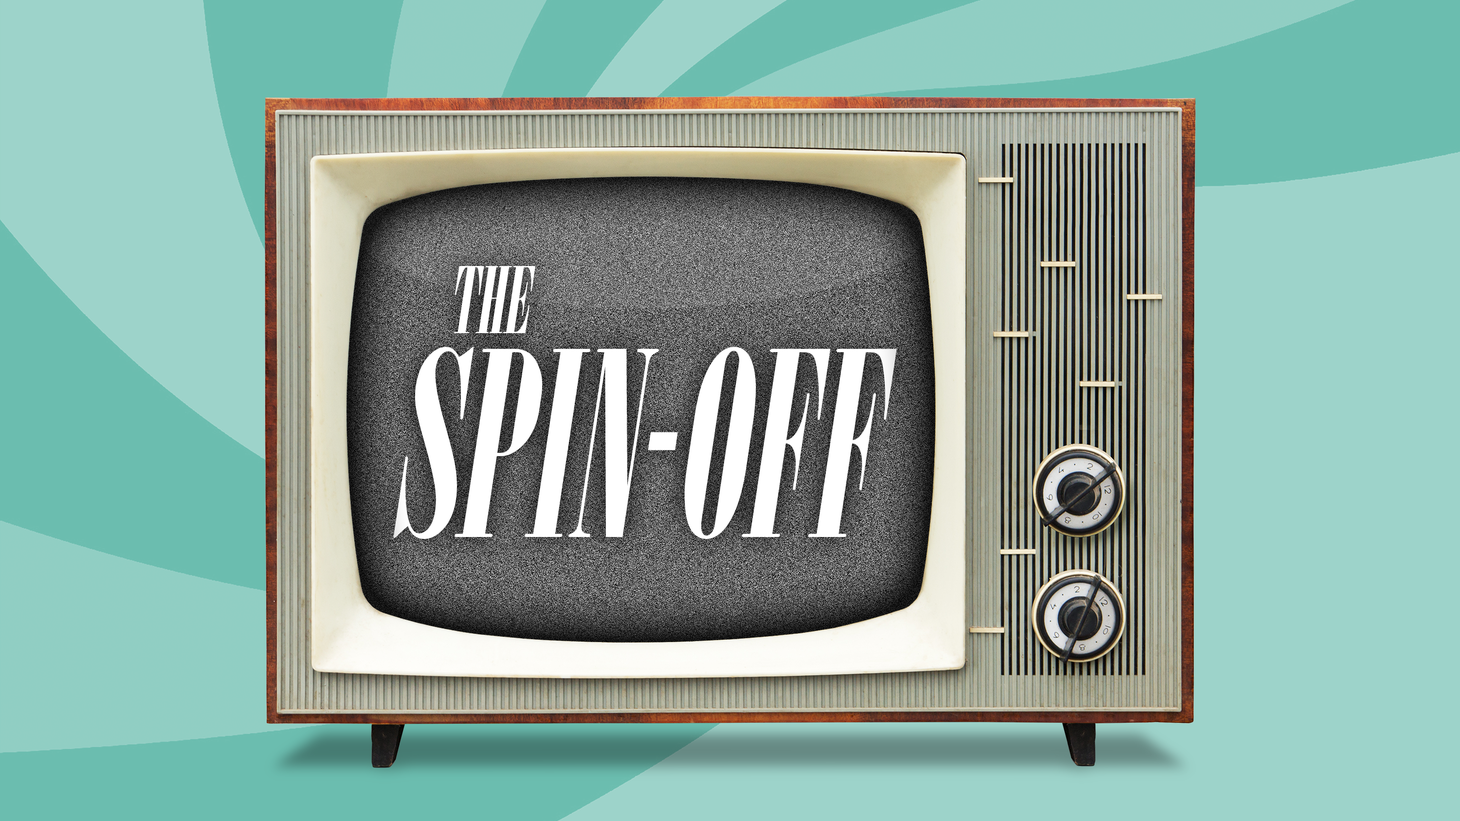 Fall TV season on the broadcast networks is just around the corner. On this episode of The Spin-Off, we talk new shows premiering and old shows returning, take a look at which networks are shaking things up with their nightly lineups, and which ones are hoping for success with more of the same.